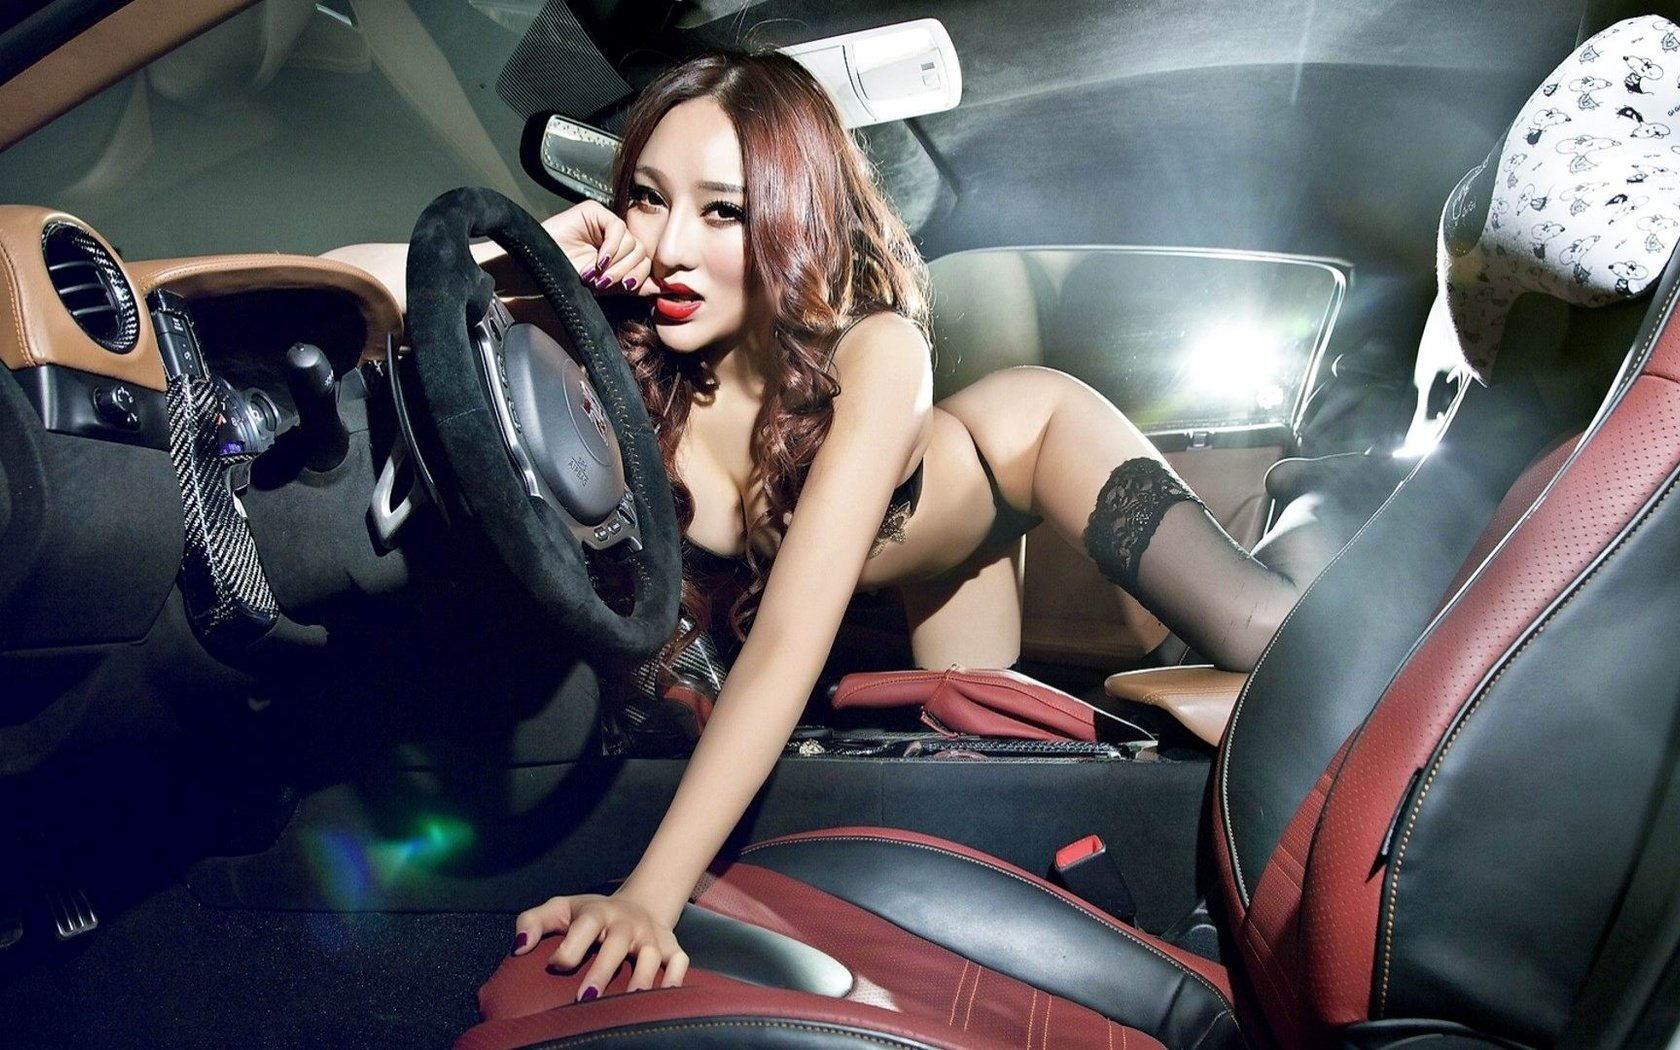 School porn girls sex in the car seamless panty pics